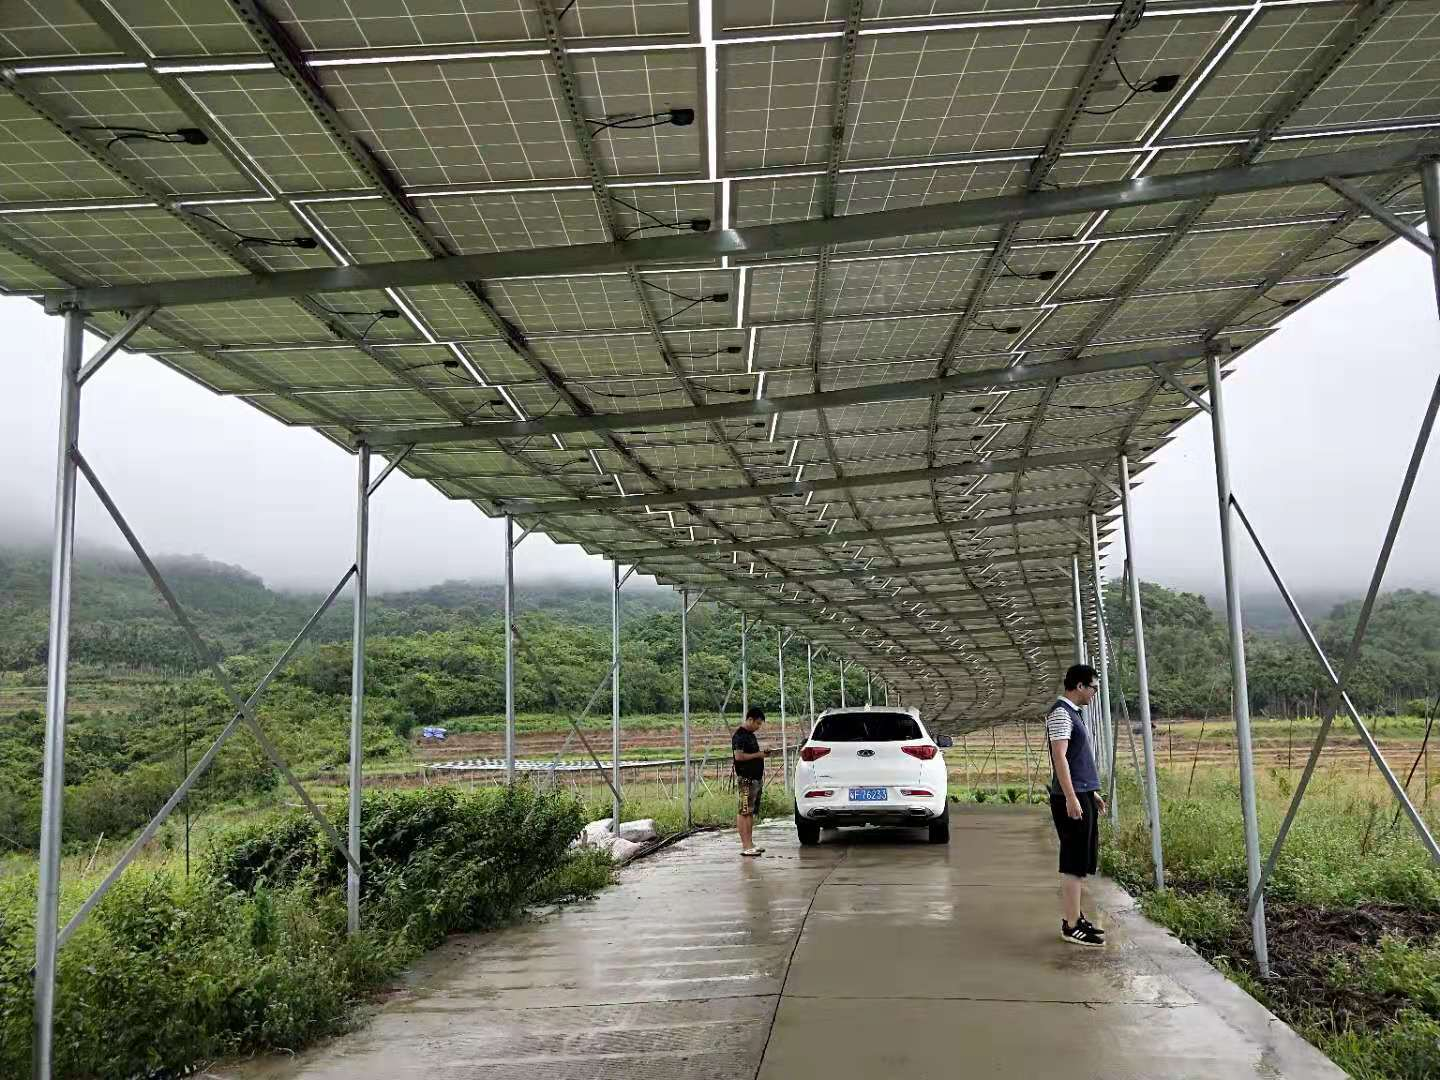 165KW Solar Powered Water Pumping System in Hainan